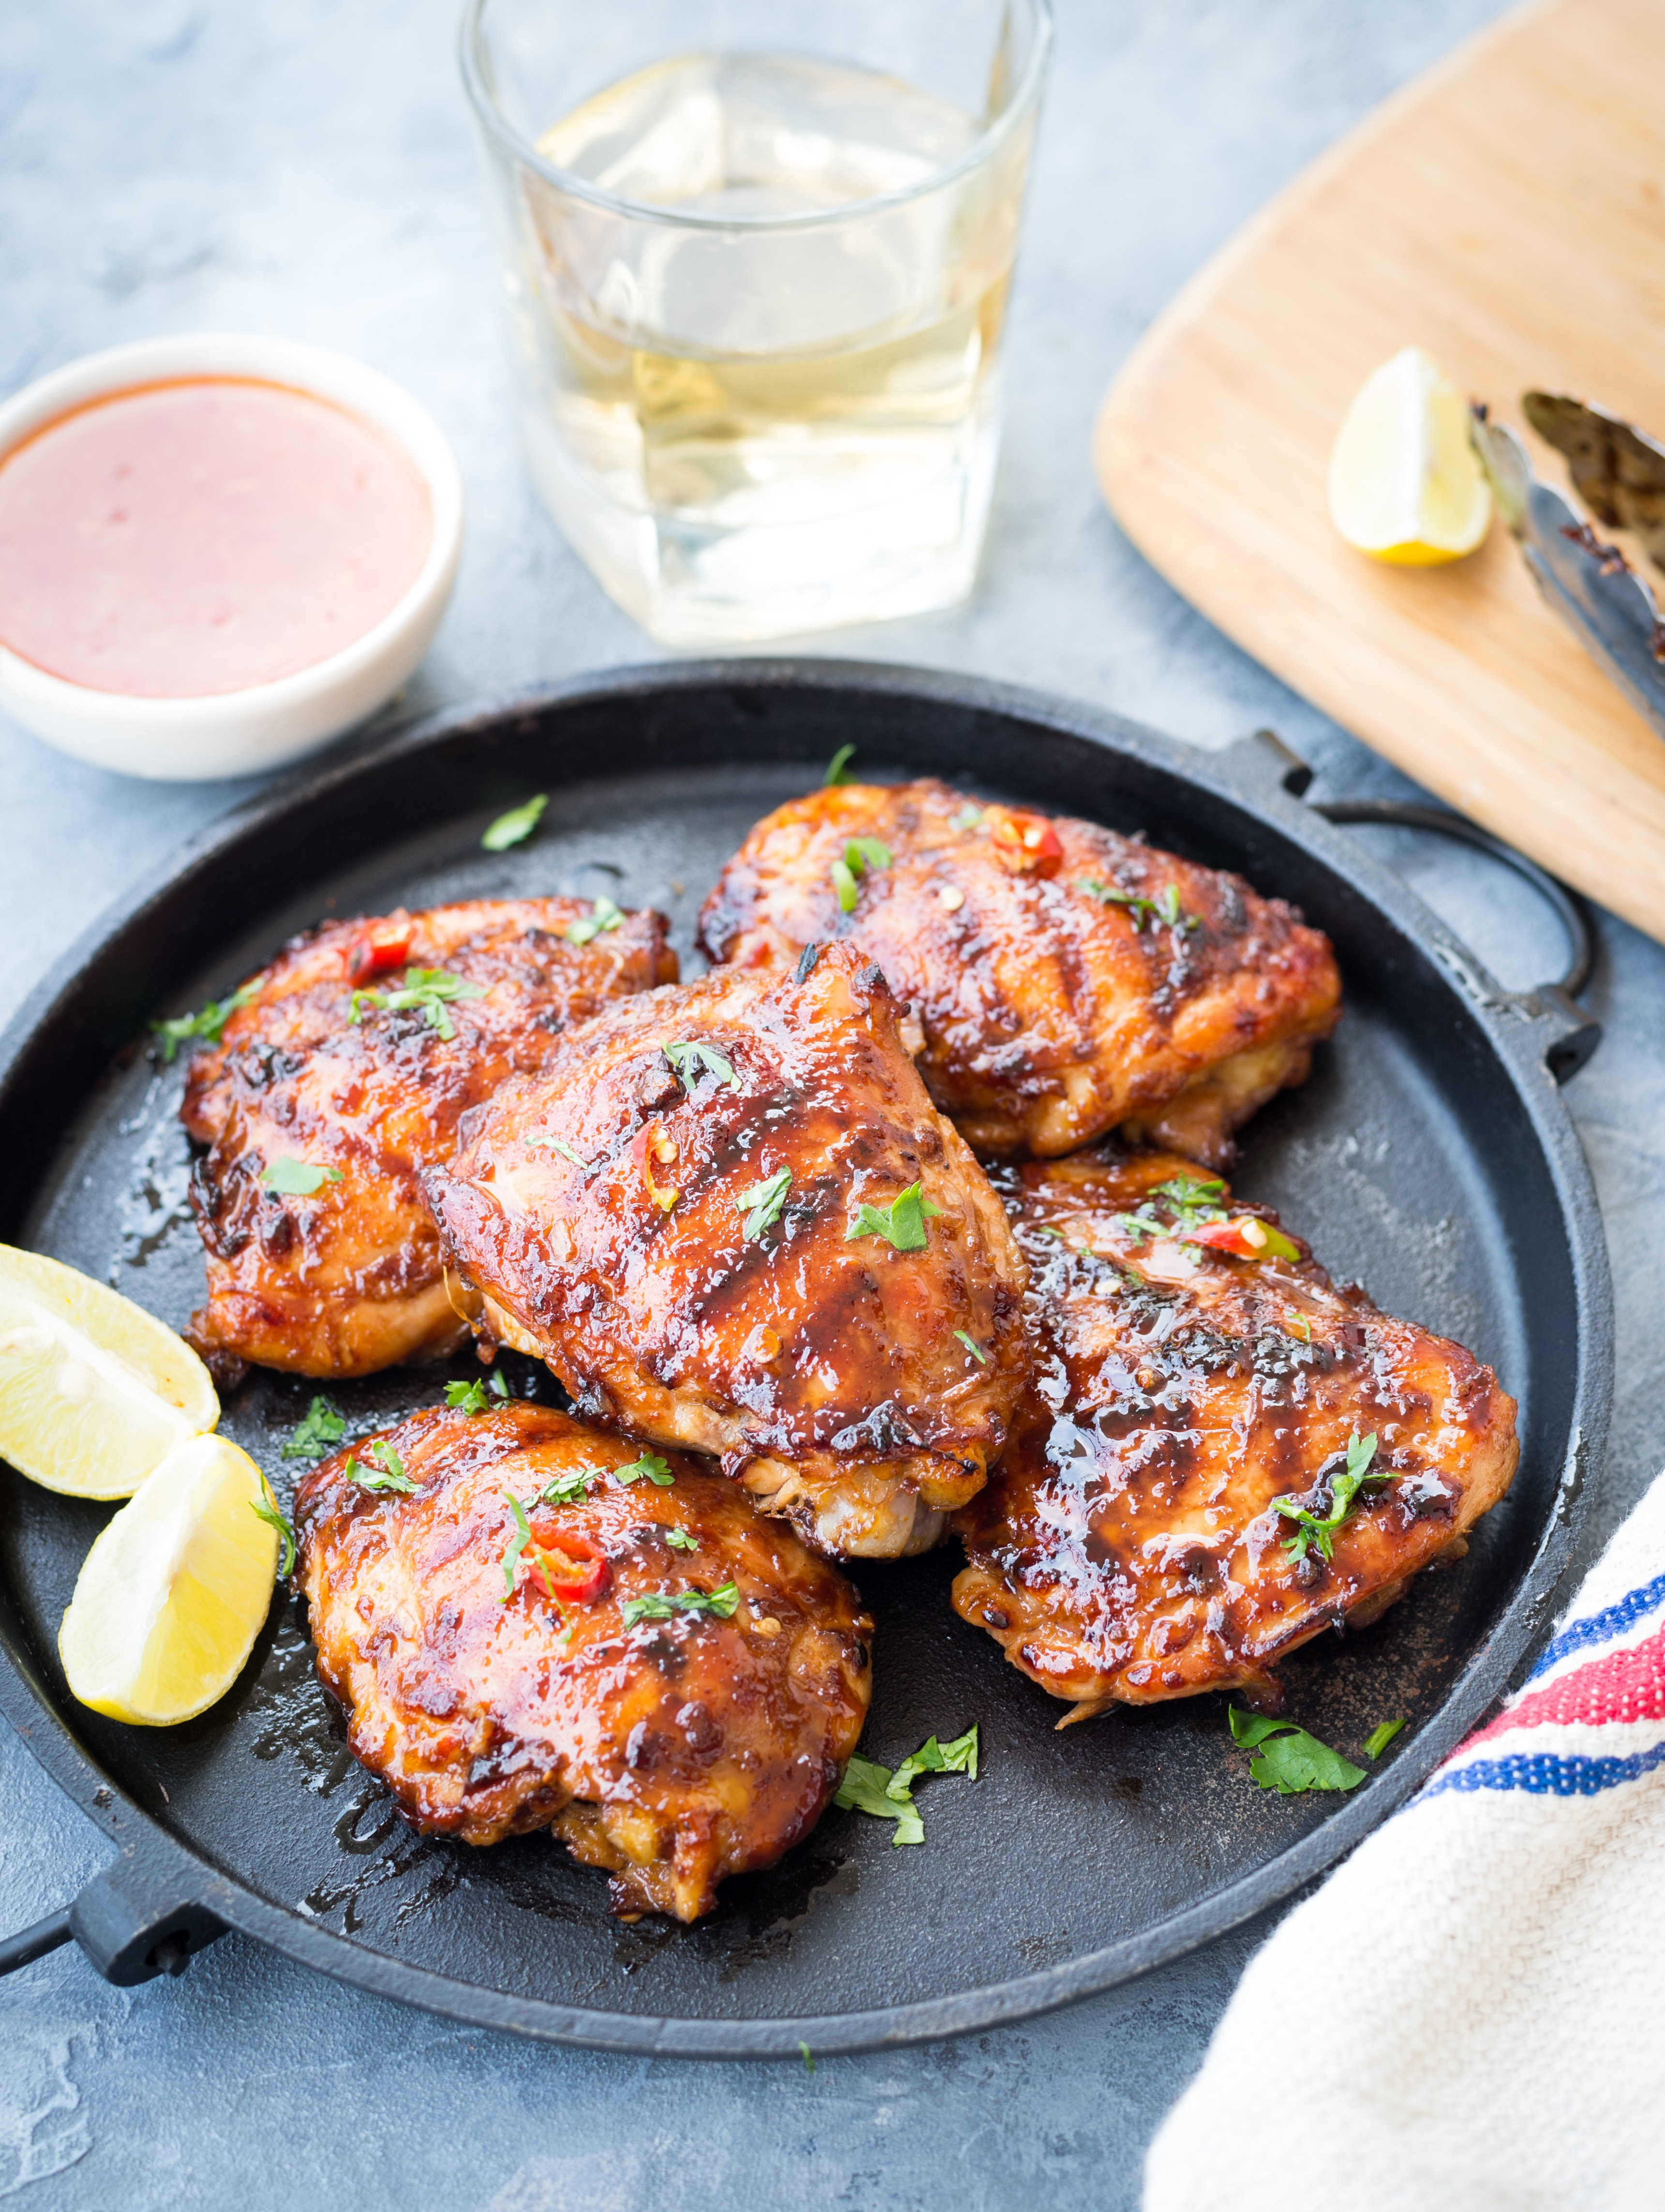 This Sweet and Spicy Thai Grilled Chicken has real Thai flavours. Chicken thighs marinated in Thai Sweet Chili Sauce, Lemongrass, fish sauce and grilled to perfection.